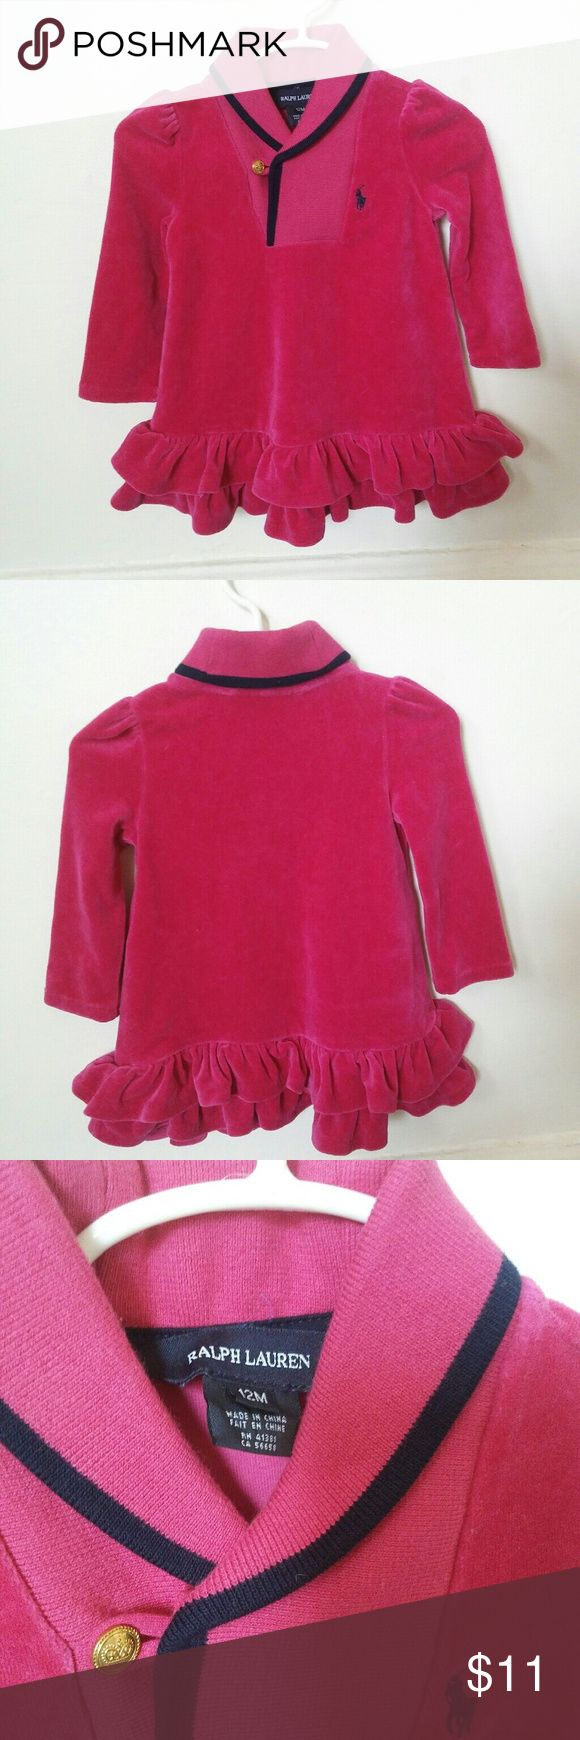 Baby polo velour dress Ralph Lauren polo baby girl pink velour dress Size:12 months 80% cotton 20% polyester Condition:used light wear comes from a smoke free home Ralph Lauren Dresses